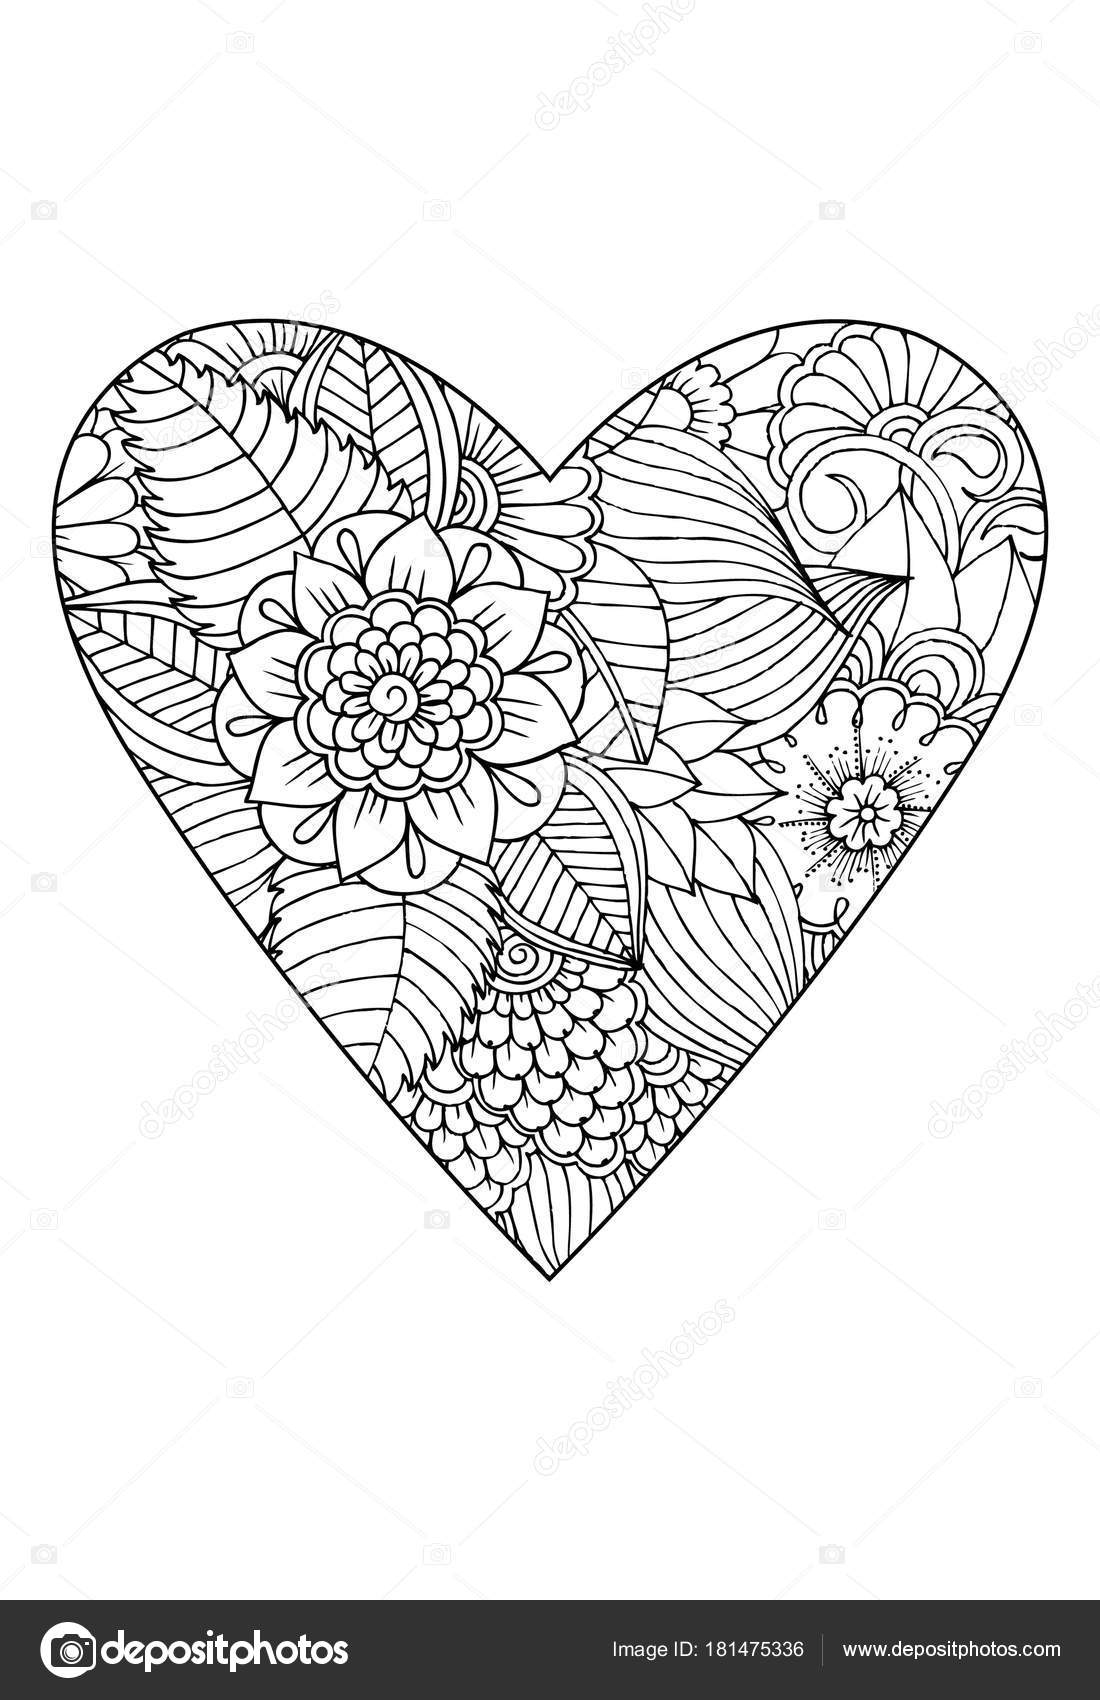 Coloring Book Style Valentine Day Theme Heart Flower Pattern Vector ...